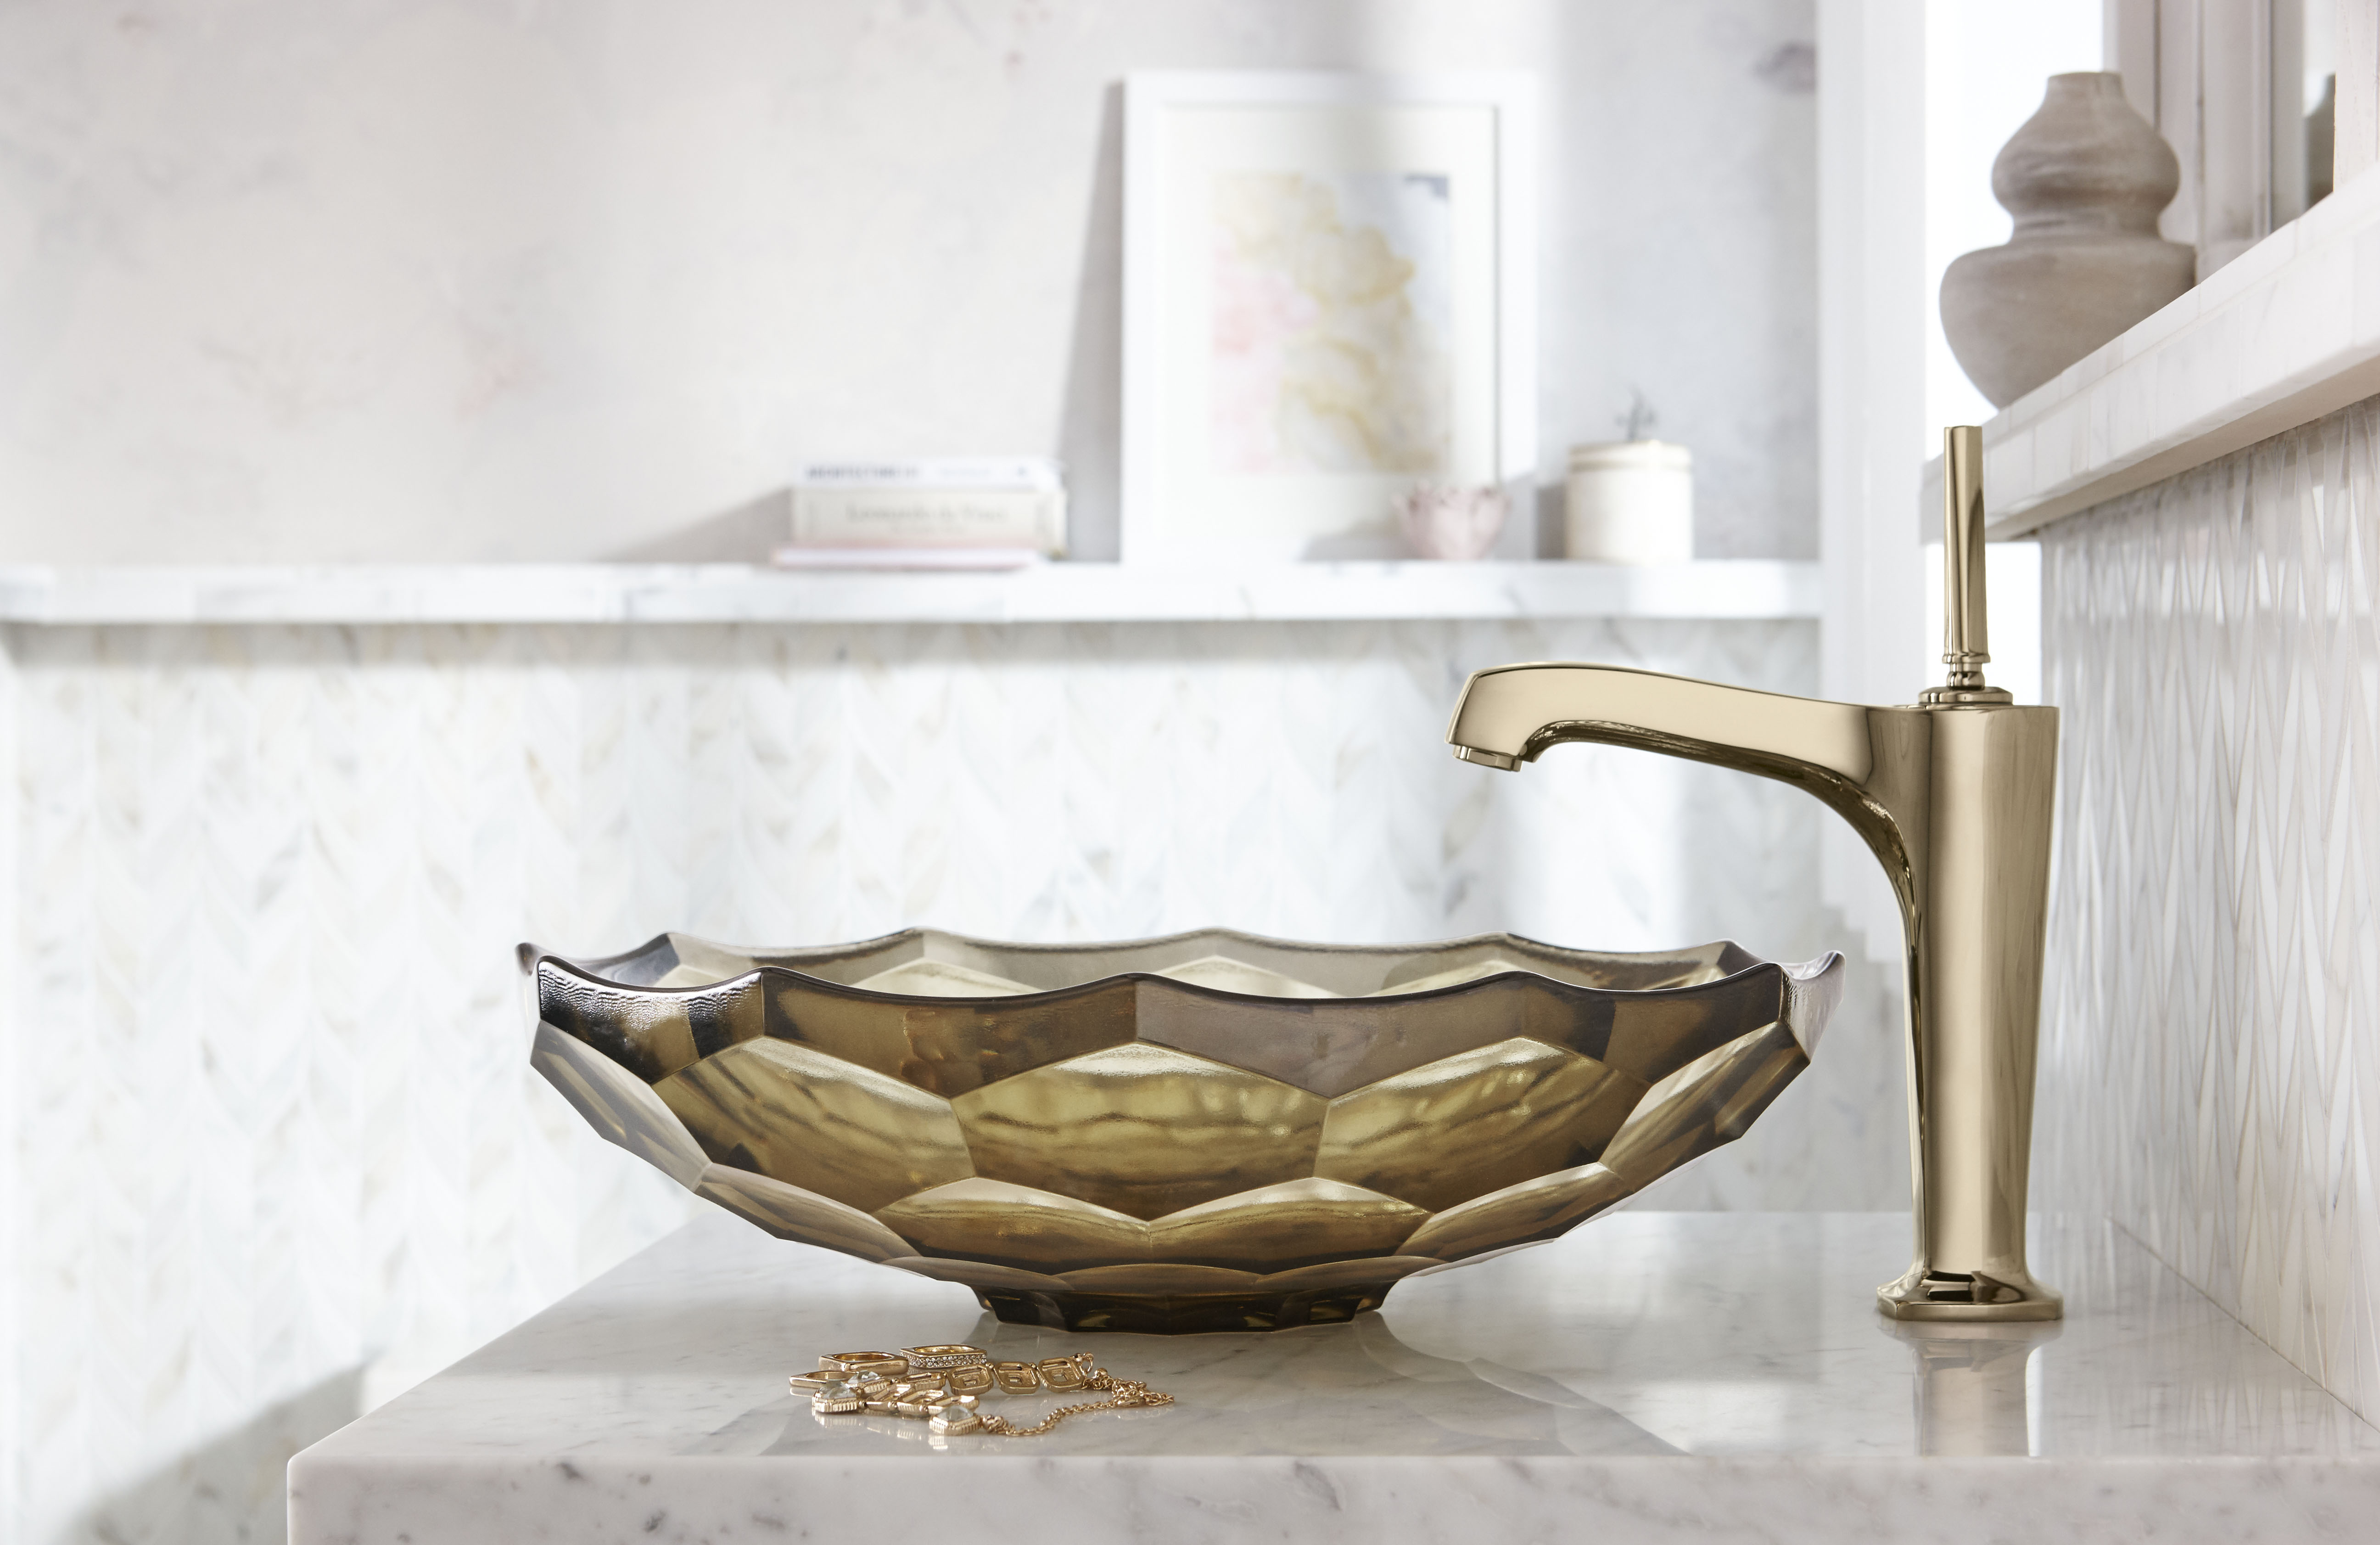 Margaux Faucet     Briolette Sink     The bright golden brown hues in this French Gold faucet and glass sink provide a nice visual contrast to this white space.